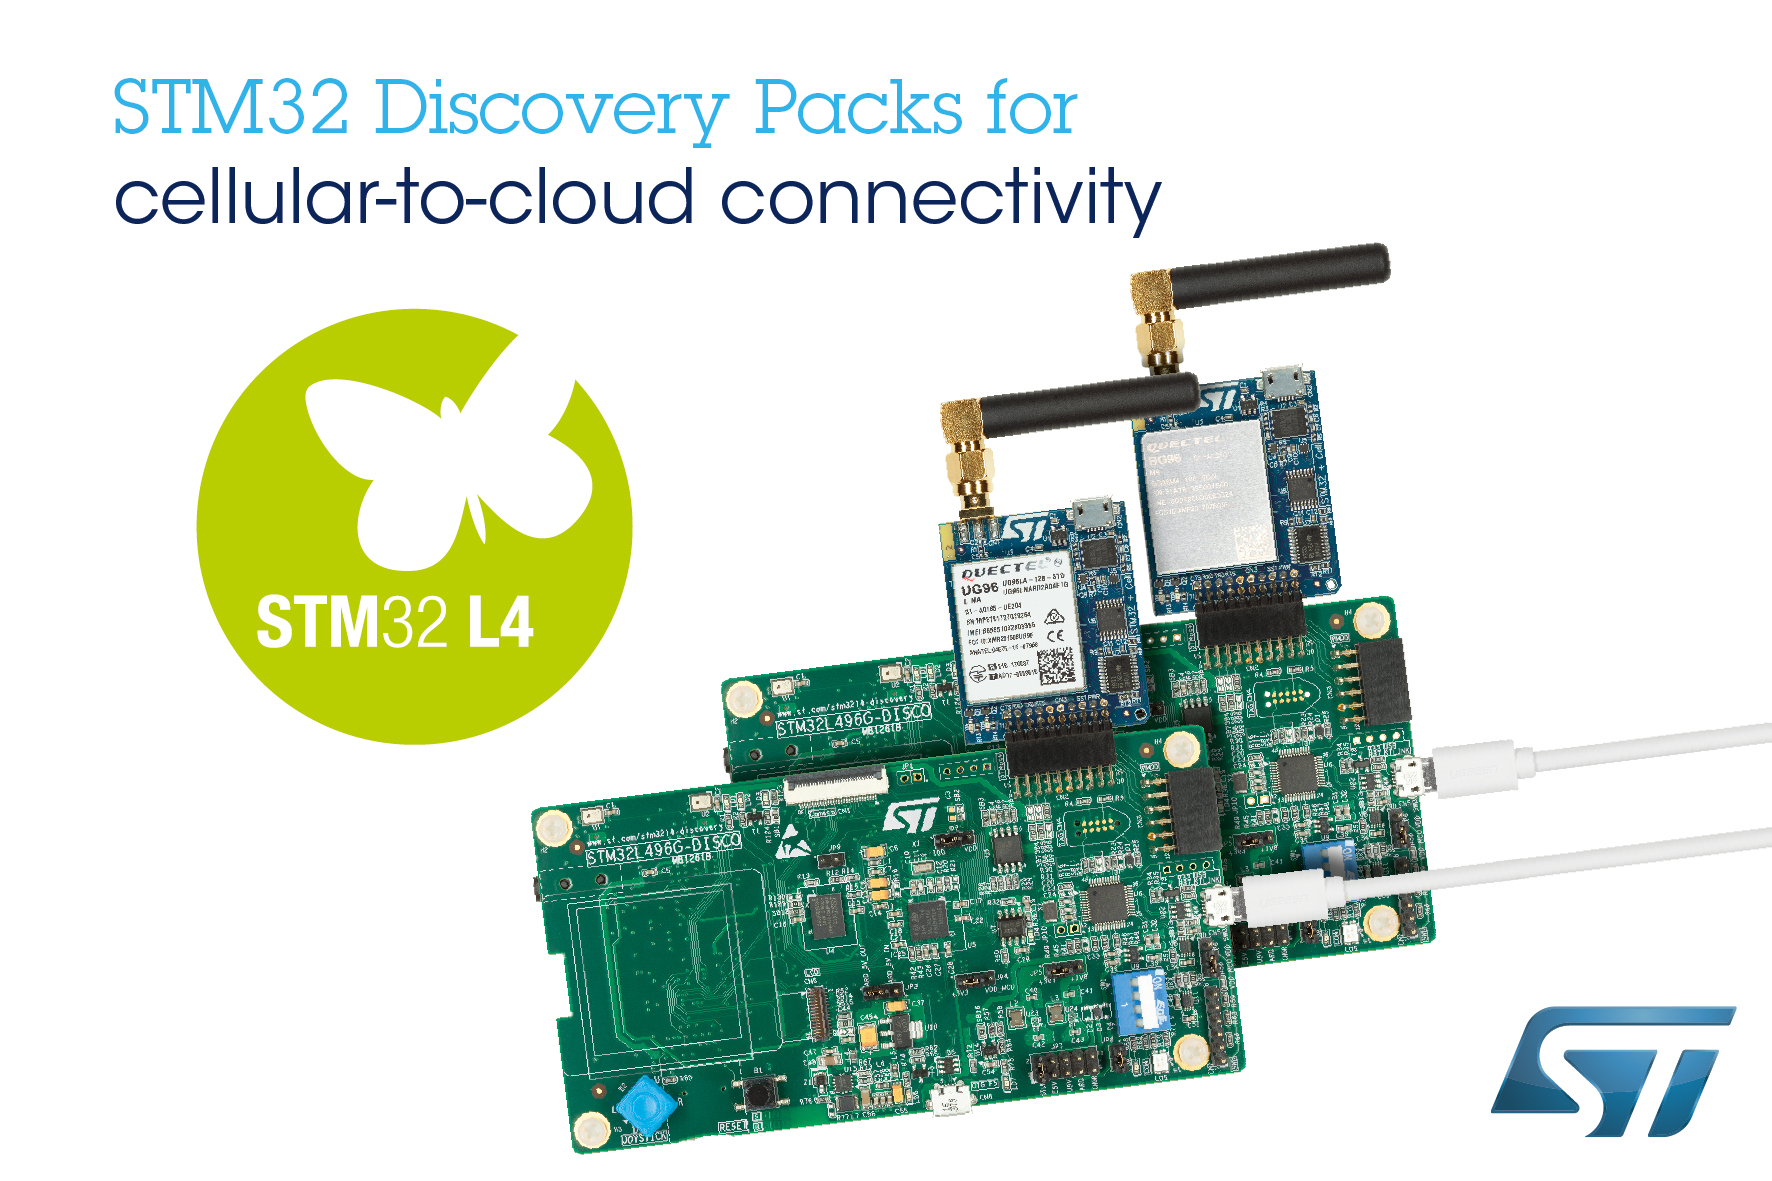 STMicroelectronics NV (via Public) / New STM32 Discovery